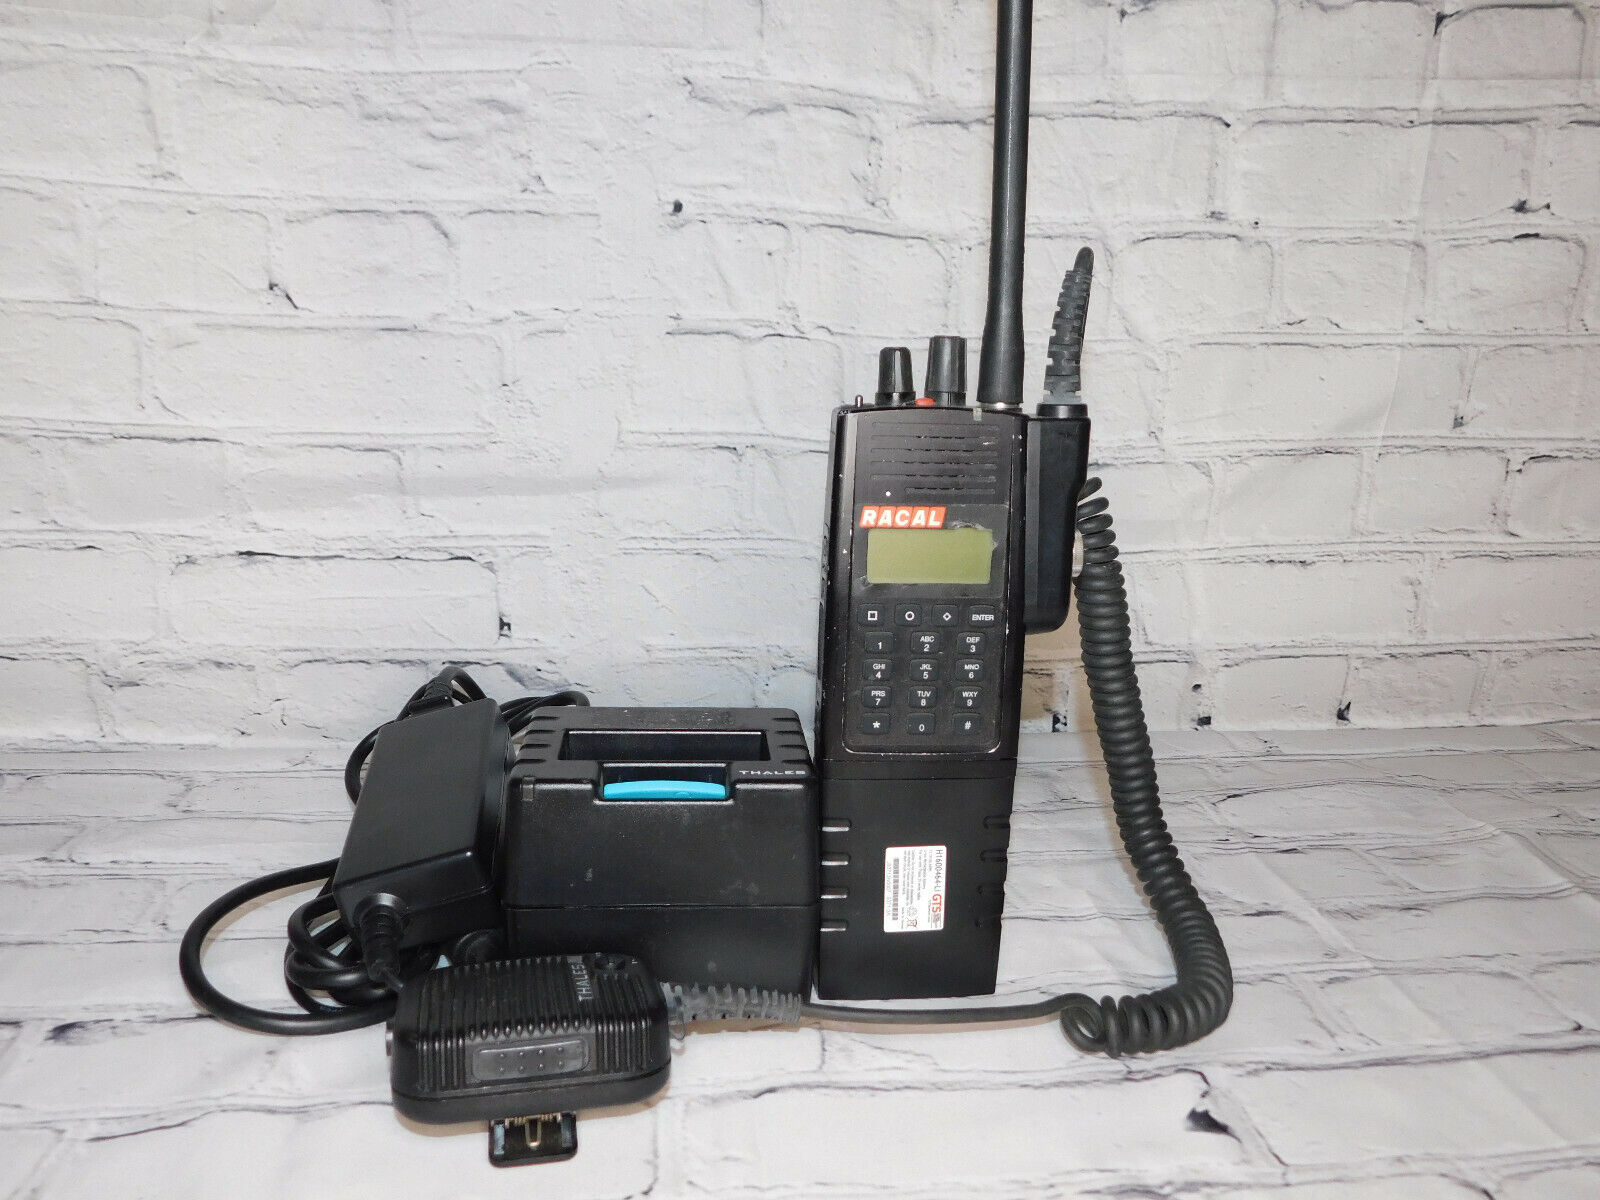 Thales T-25 Racal P25 PRC-6894 FPP Analog/Digital Radio With AES/DES New Battery. Buy it now for 350.00